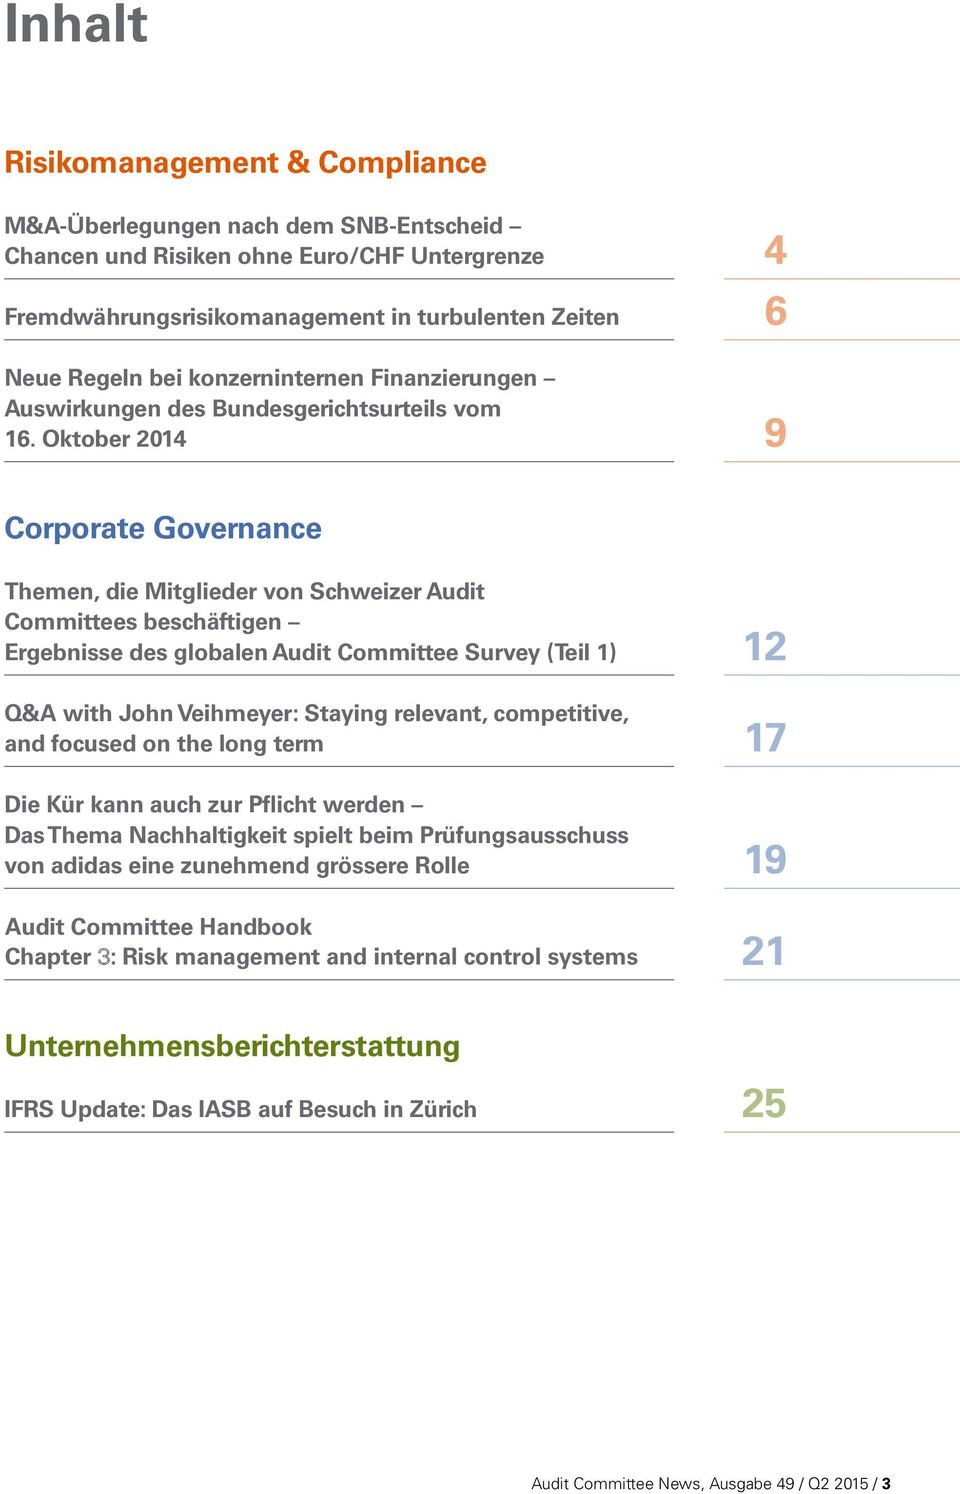 Oktober 20 4 6 9 Corporate Governance Themen, die Mitglieder von Schweizer Audit Committees beschäftigen Ergebnisse des globalen Audit Committee Survey (Teil 1) Q&A with John Veihmeyer: Staying